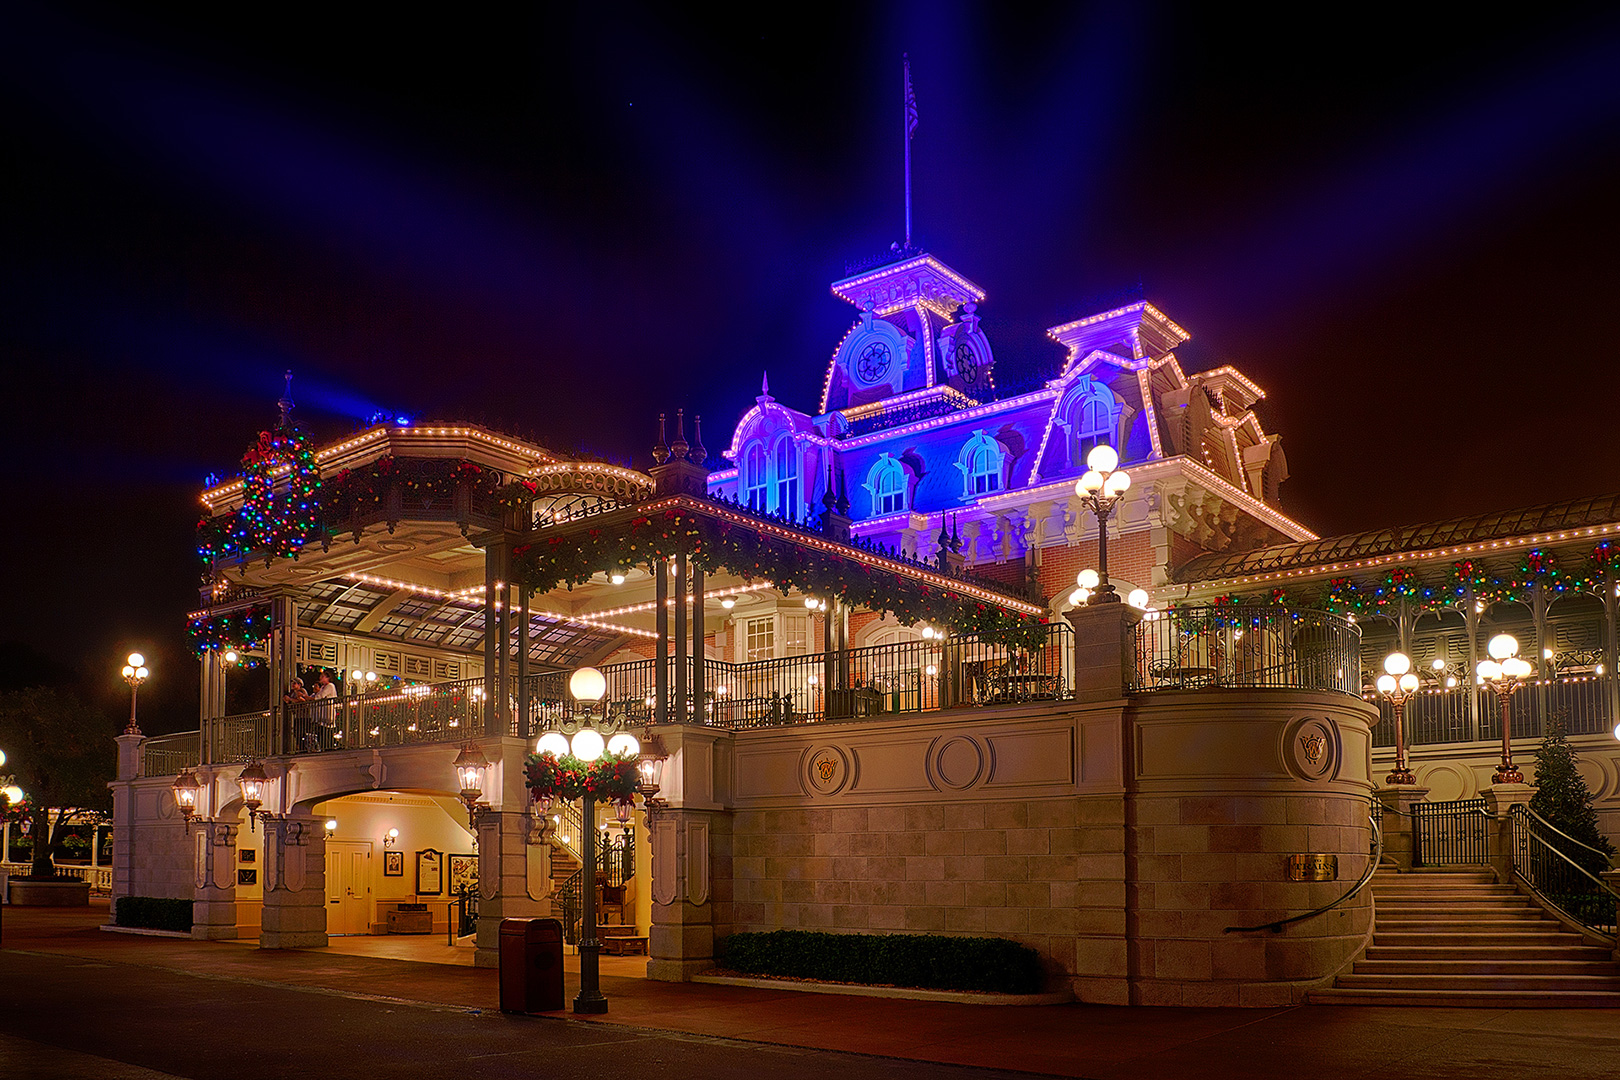 Disney Photography, Disney World Photography, Disneyland Photography, Disney Photos, Disney Pictures, Walt Disney World, The Magic Kingdom, Walt Disney, Mickey Mouse, Orlando, Florida, Theme Park,  Main Street USA, Train Station